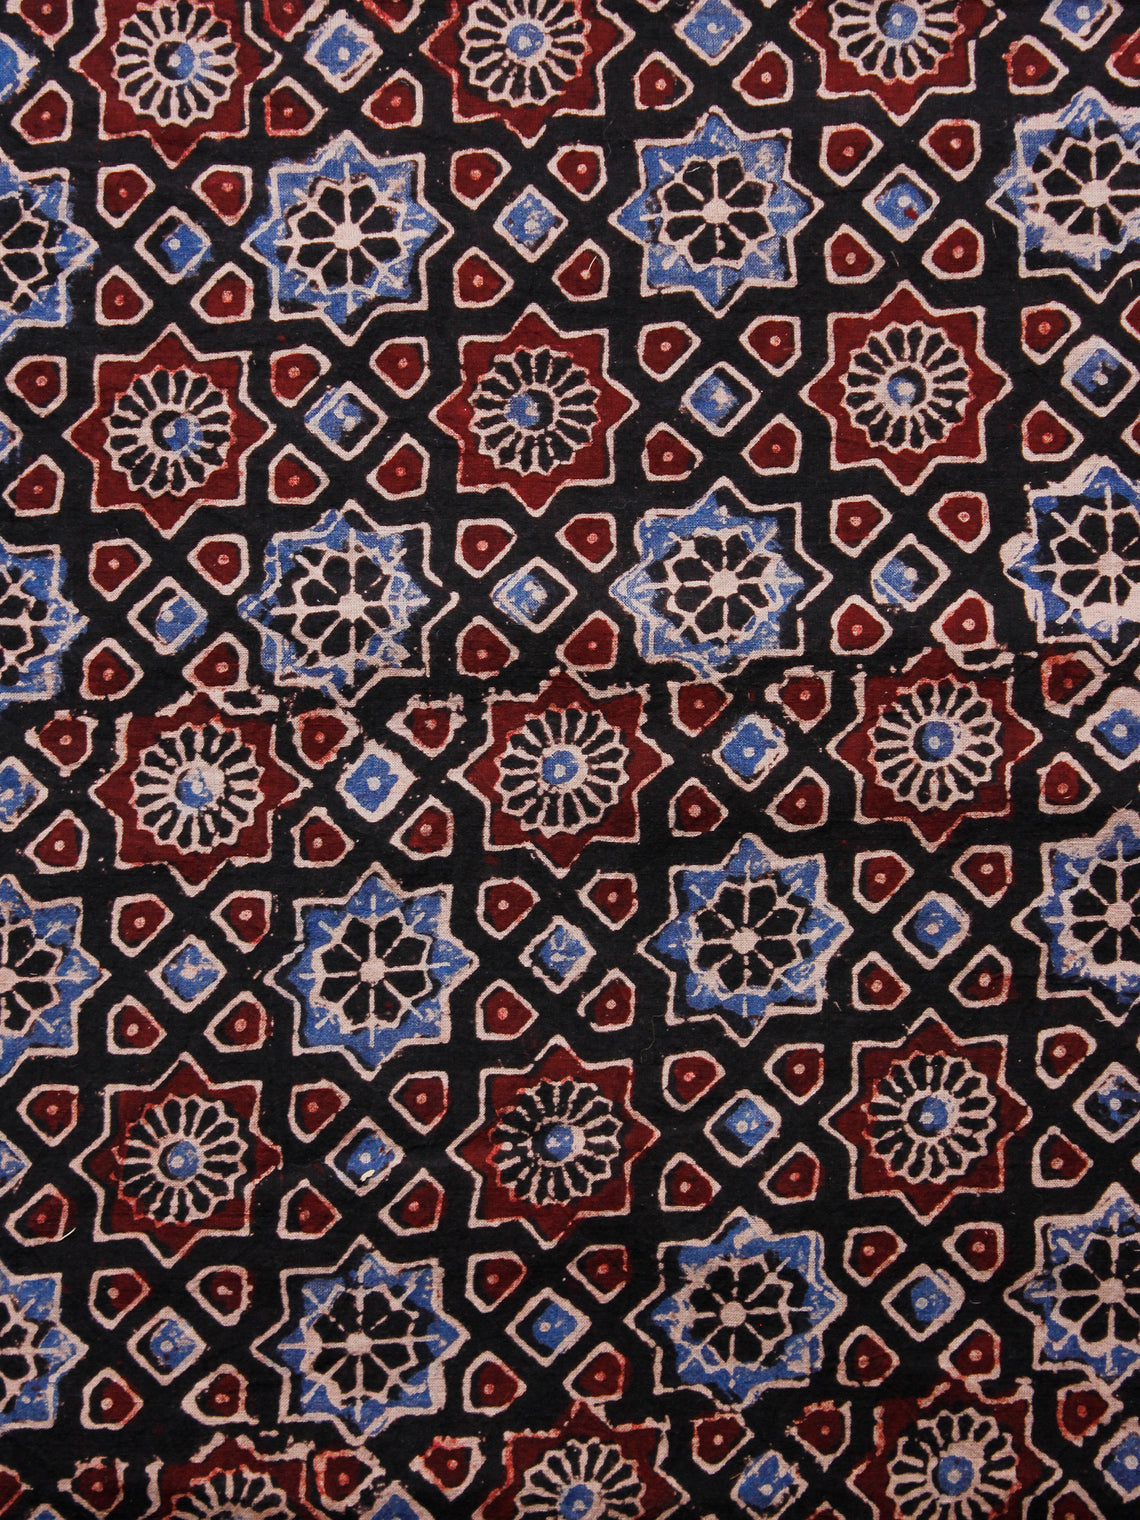 Black Blue Ivory Maroon Ajrakh Hand Block Printed Cotton Fabric Per Meter - F003F1588